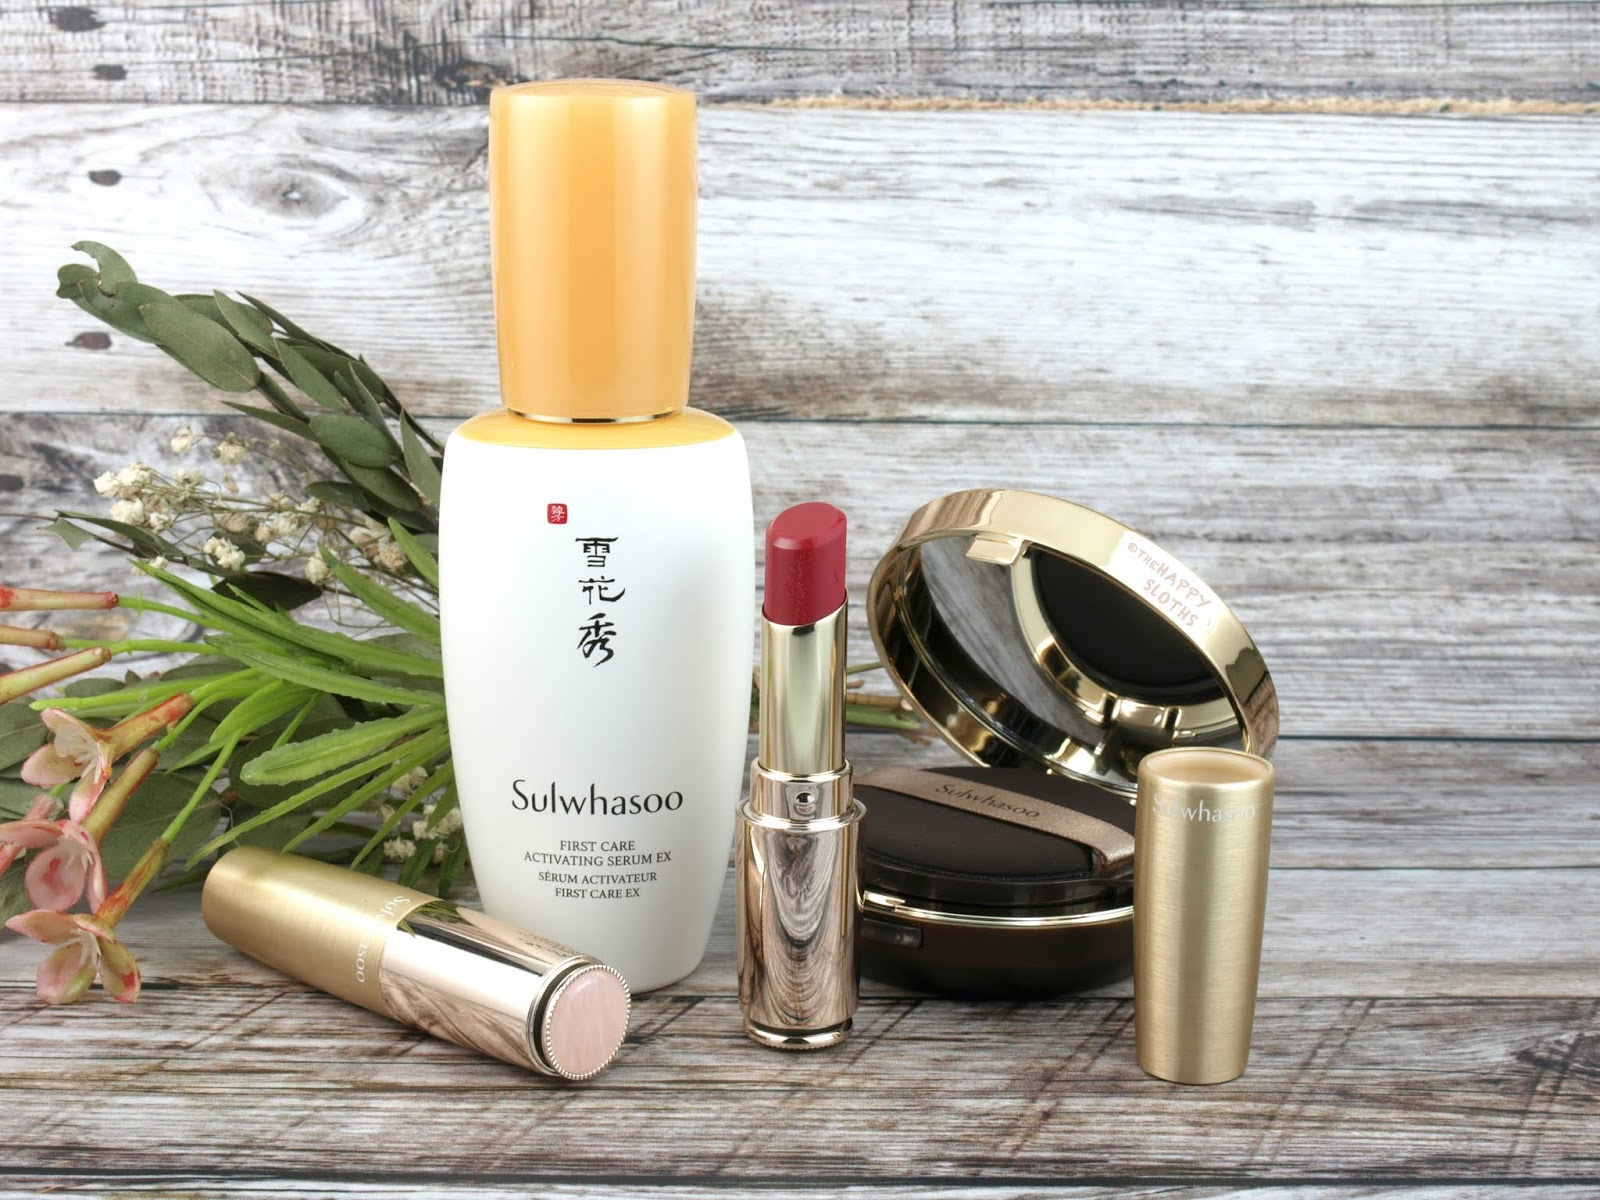 Sulwhasoo | First Care Activating Serum EX: Review